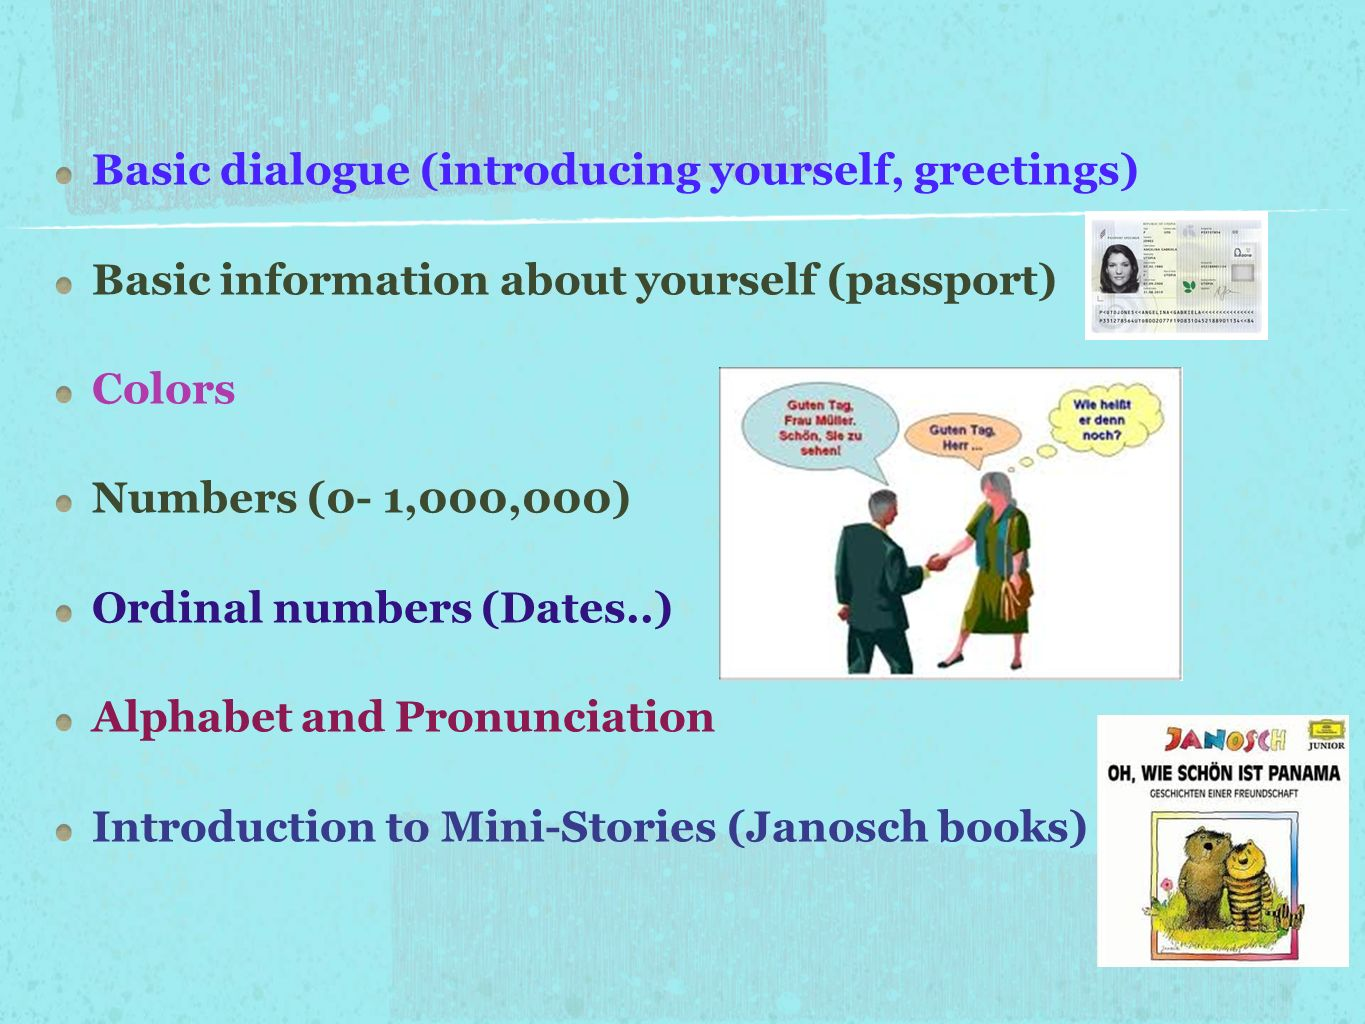 Basic dialogue (introducing yourself, greetings) Basic information about yourself (passport) Colors Numbers (0- 1,000,000) Ordinal numbers (Dates..) A